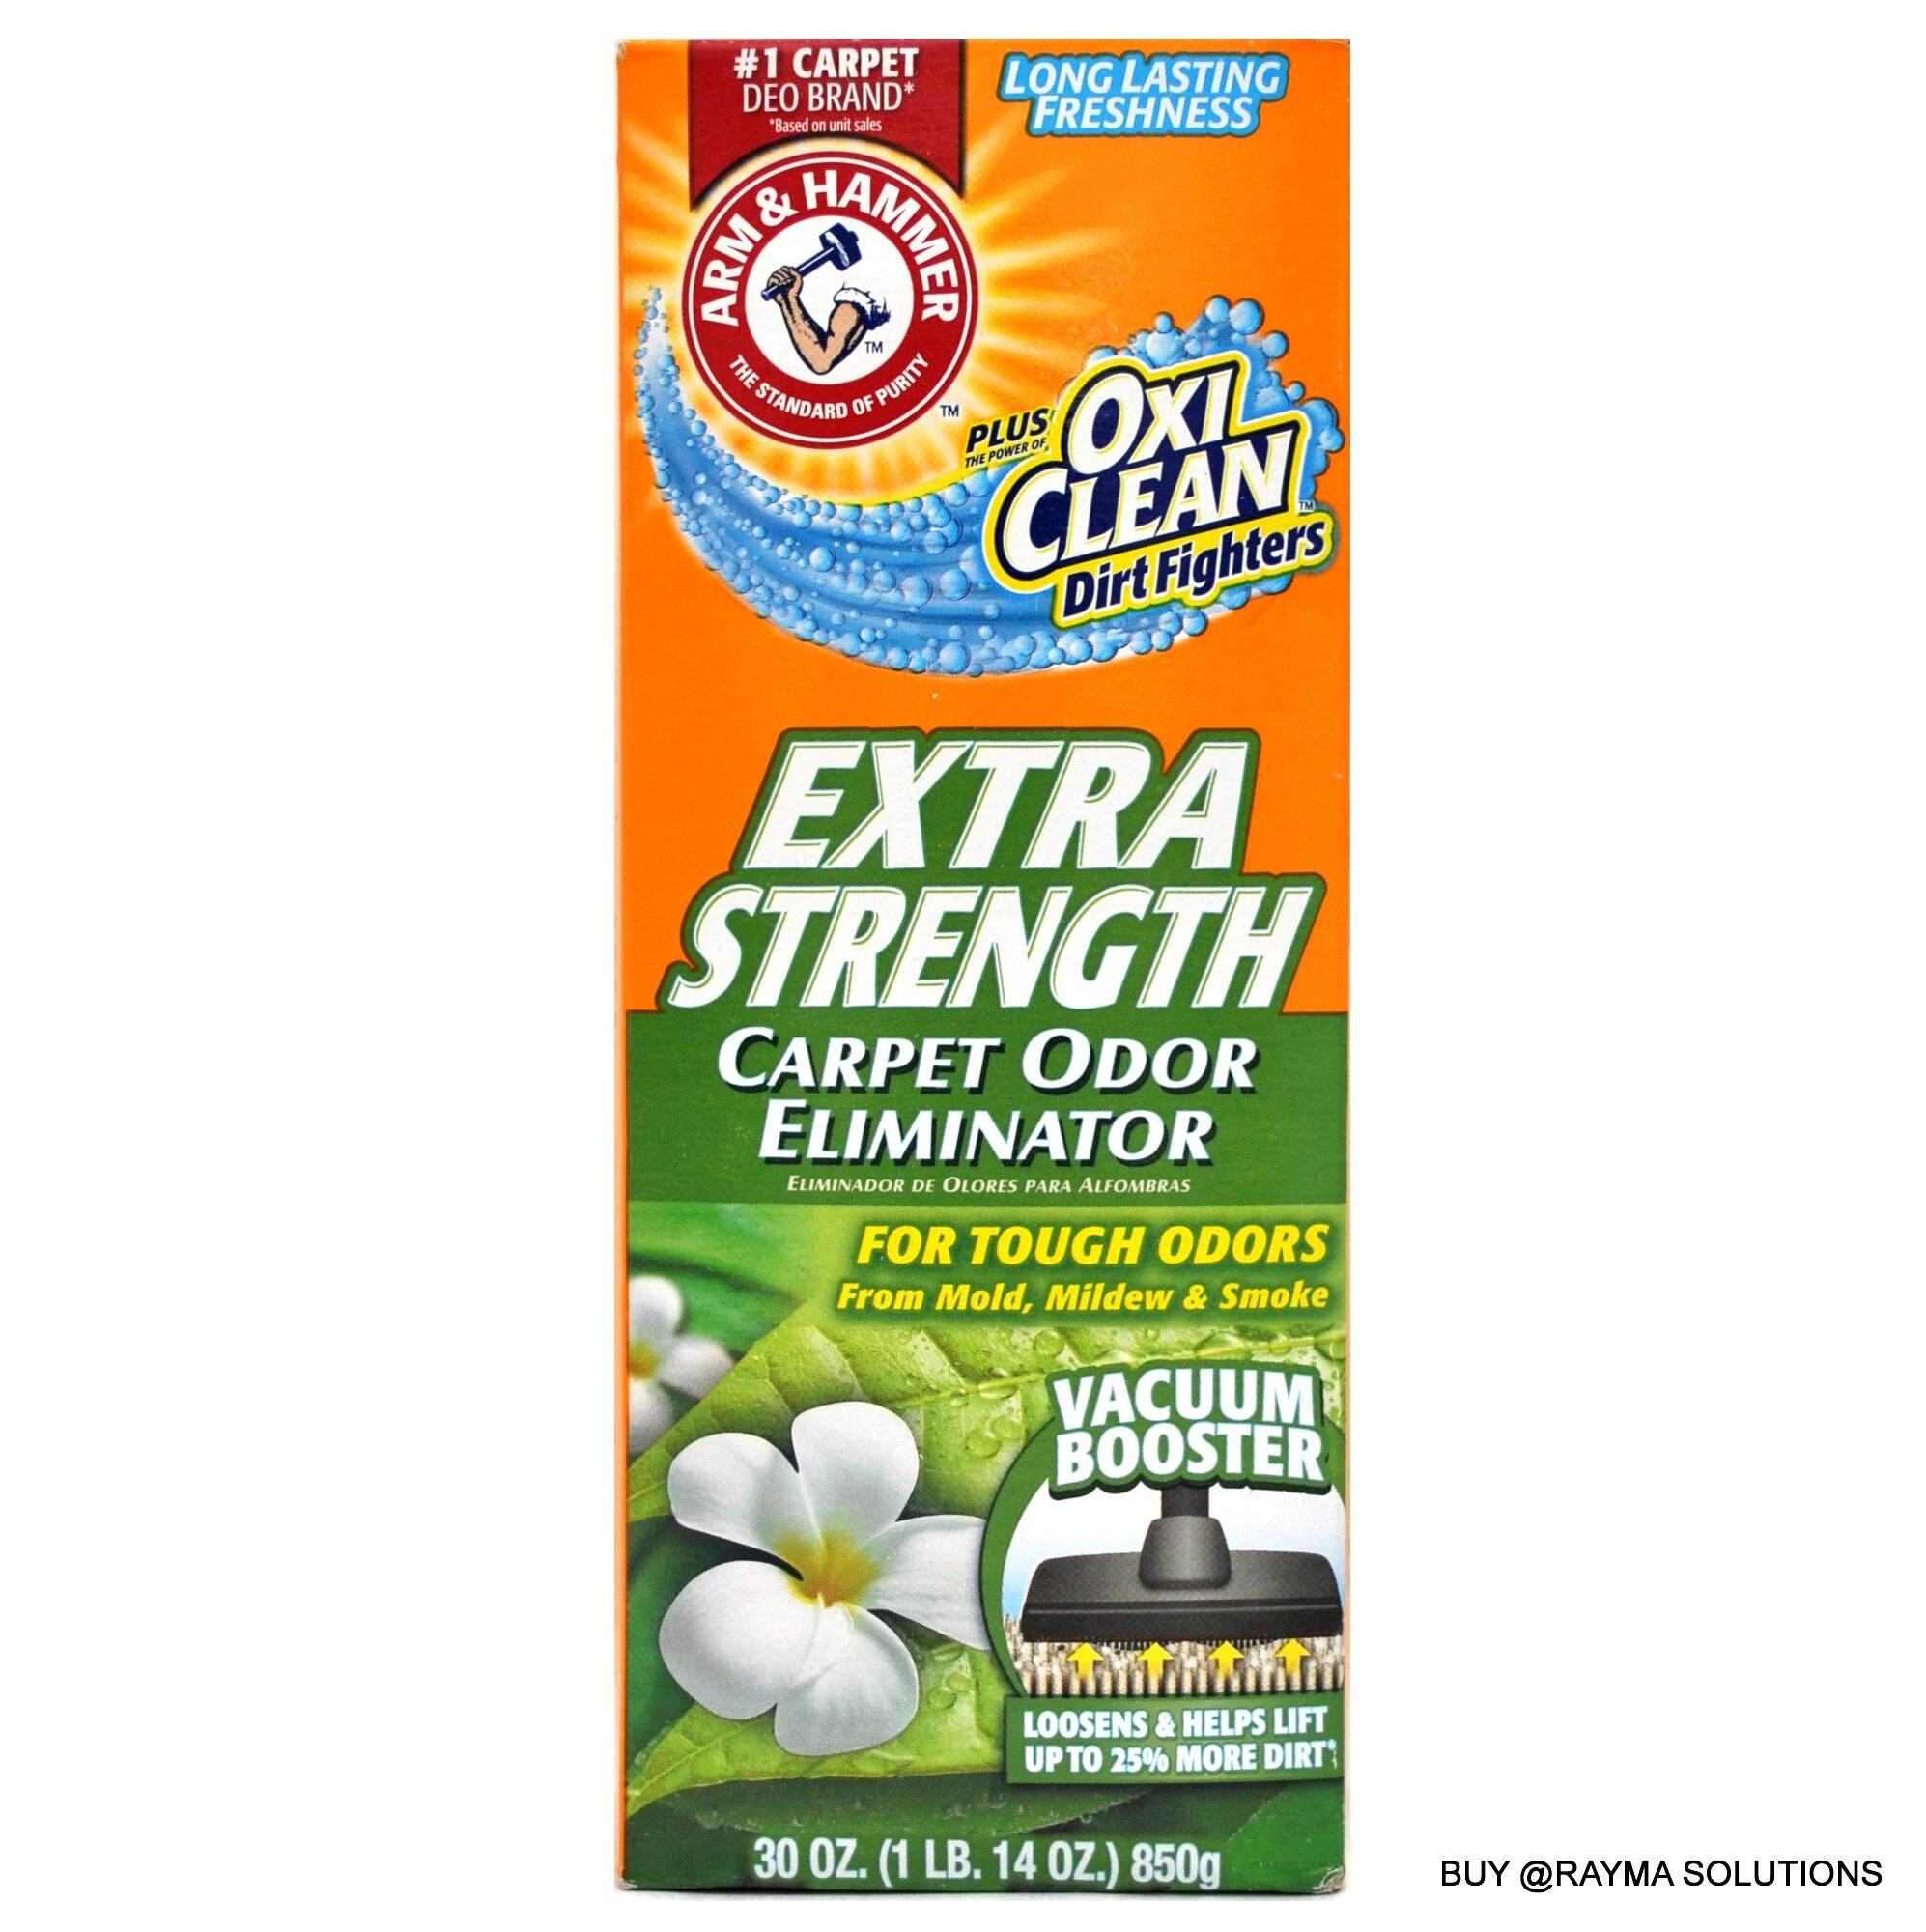 ARM & HAMMER Extra Strength Carpet Odor Eliminator, Plus OxiClean Dirt Fighters, 850g